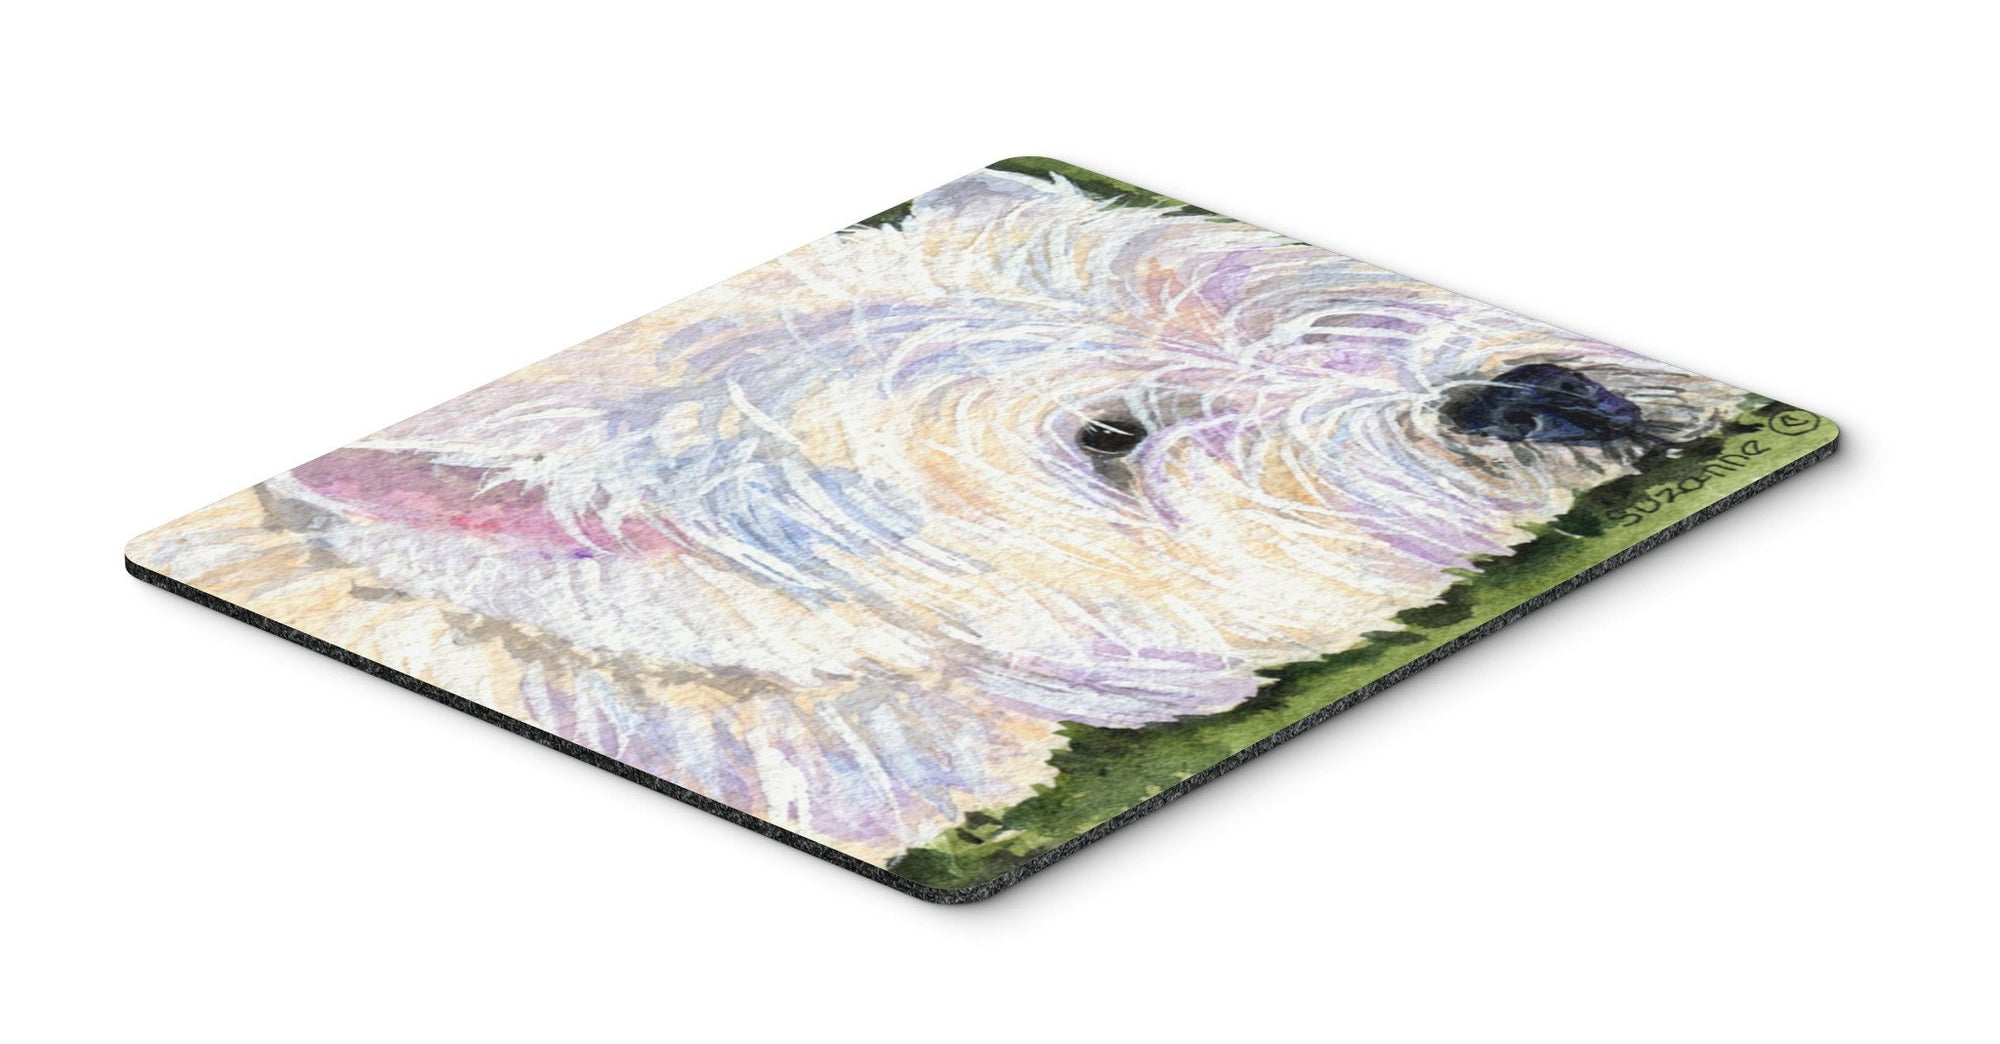 Westie Mouse pad, hot pad, or trivet by Caroline's Treasures